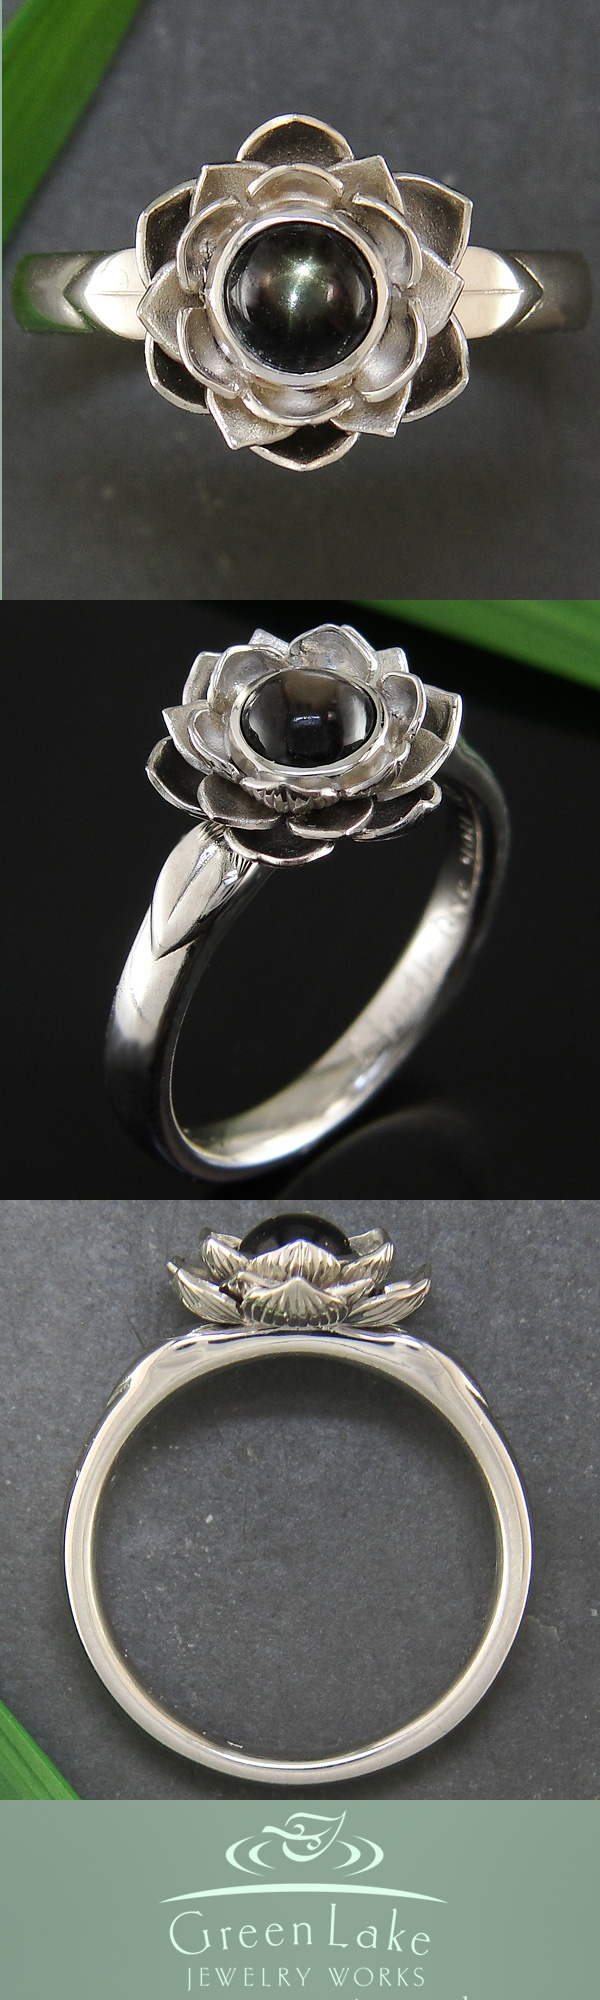 Handmade lotus ring in platinum with a black star sapphire center.